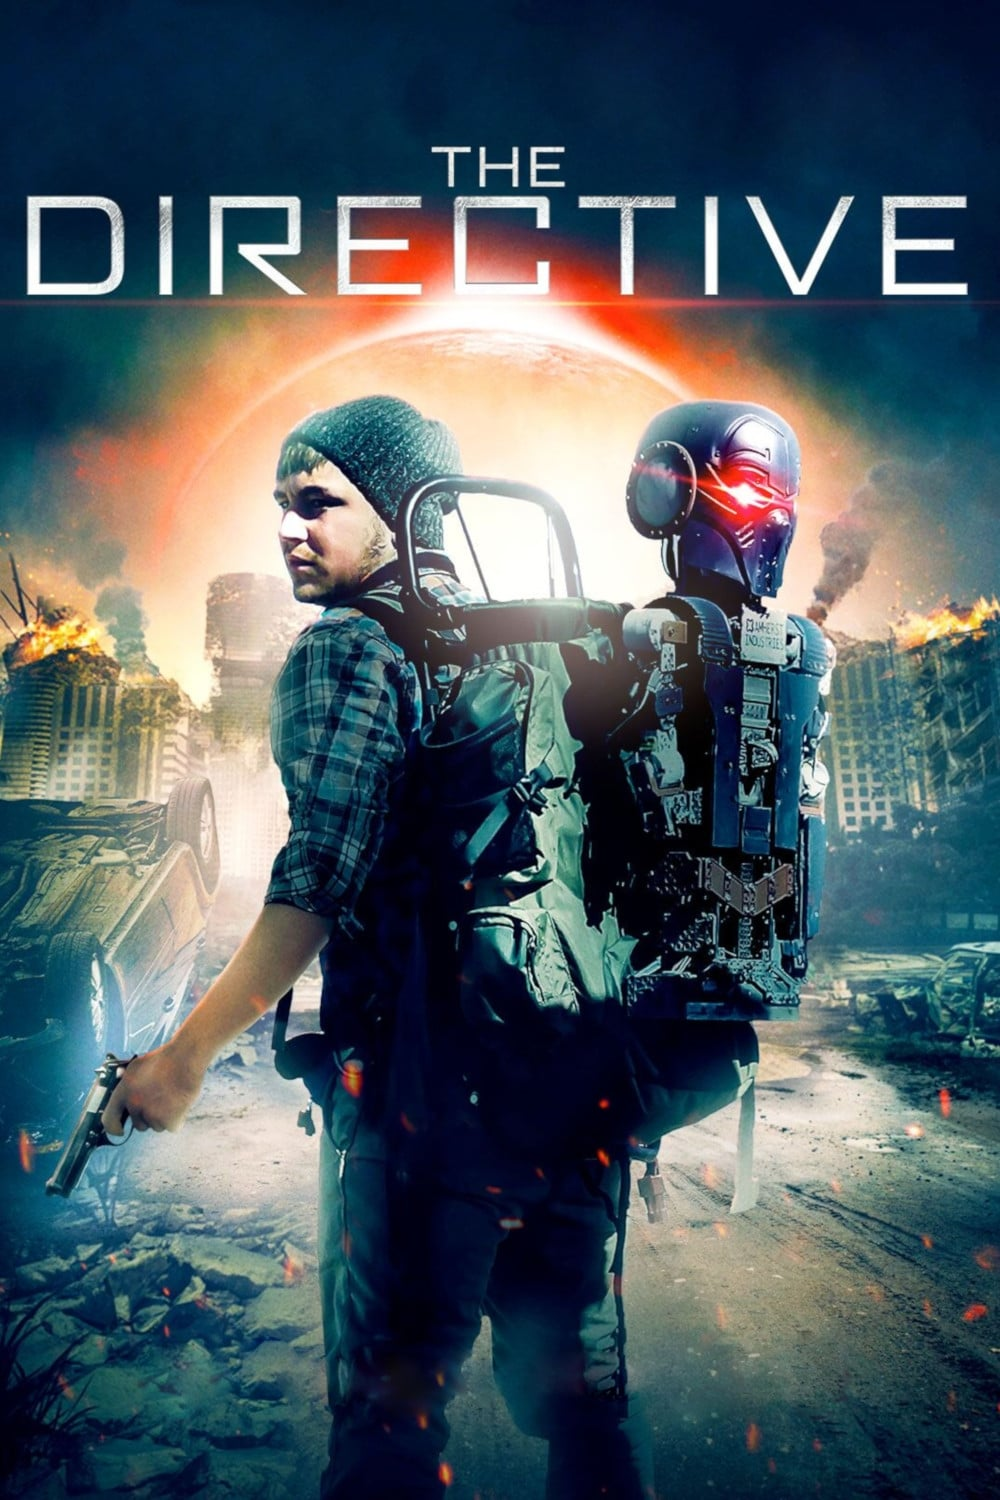 The Directive (2019)